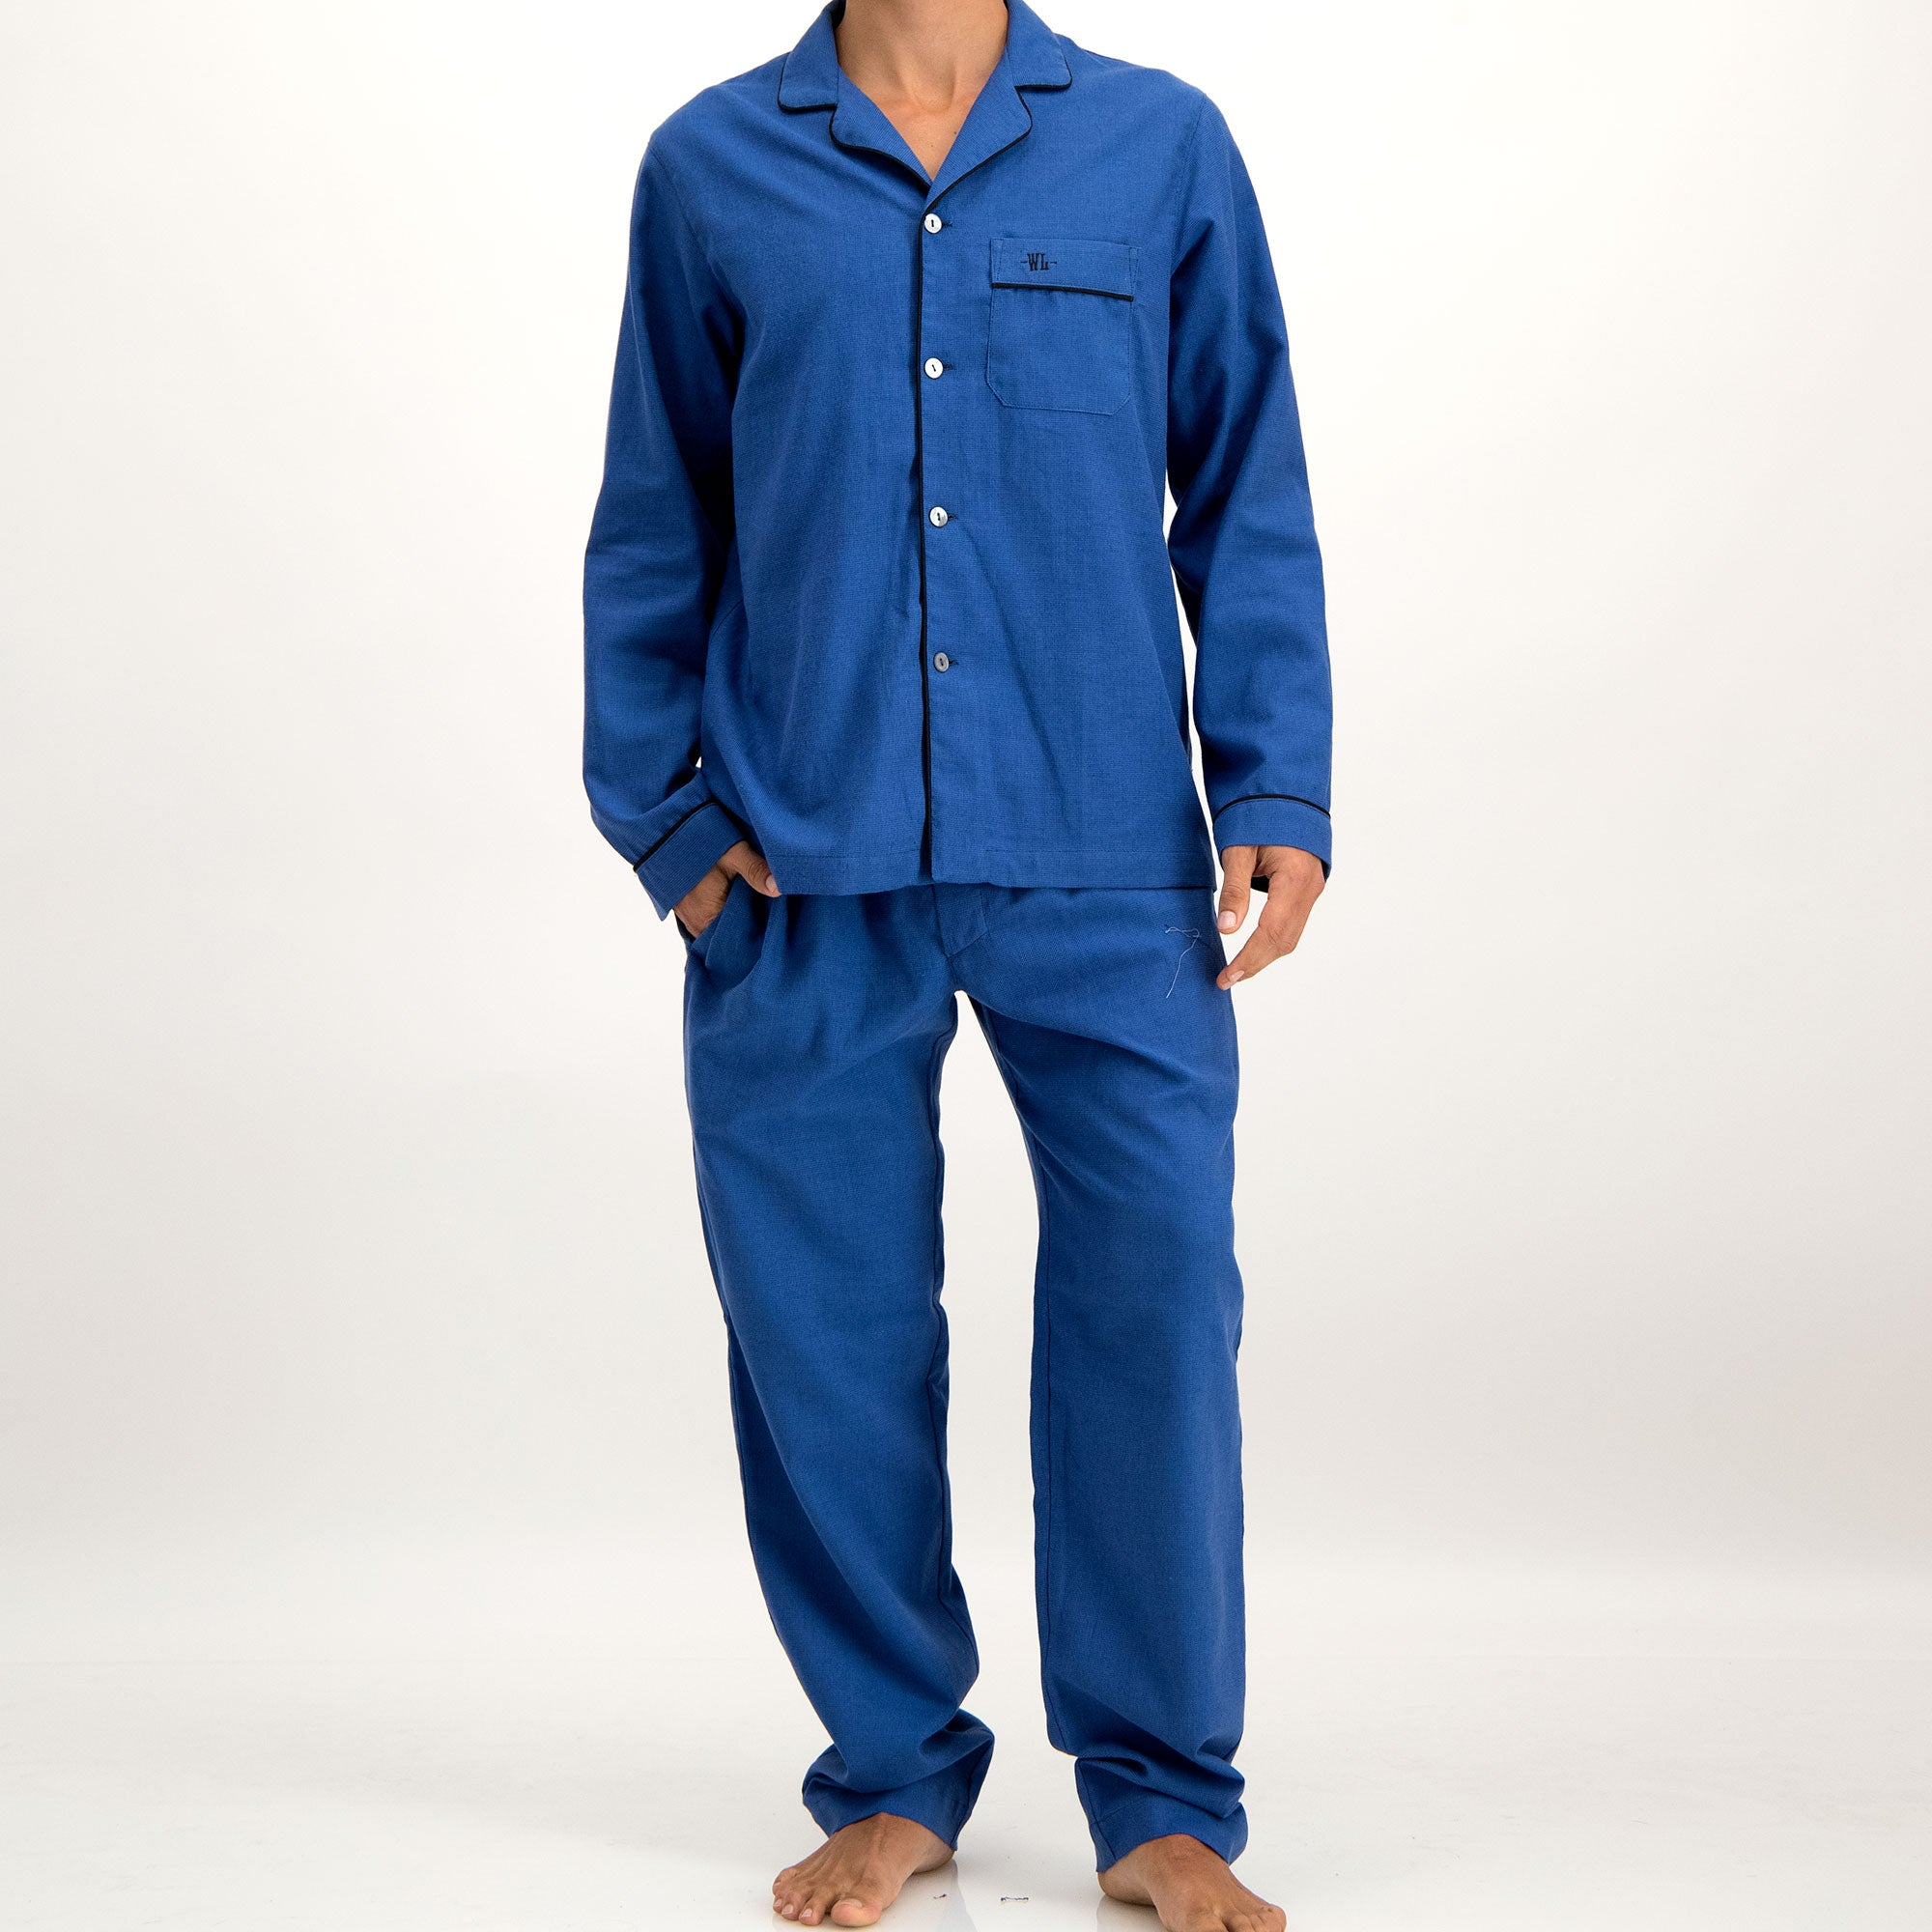 Mens Long Pyjamas Electric Blue Flannel - Woodstock Laundry